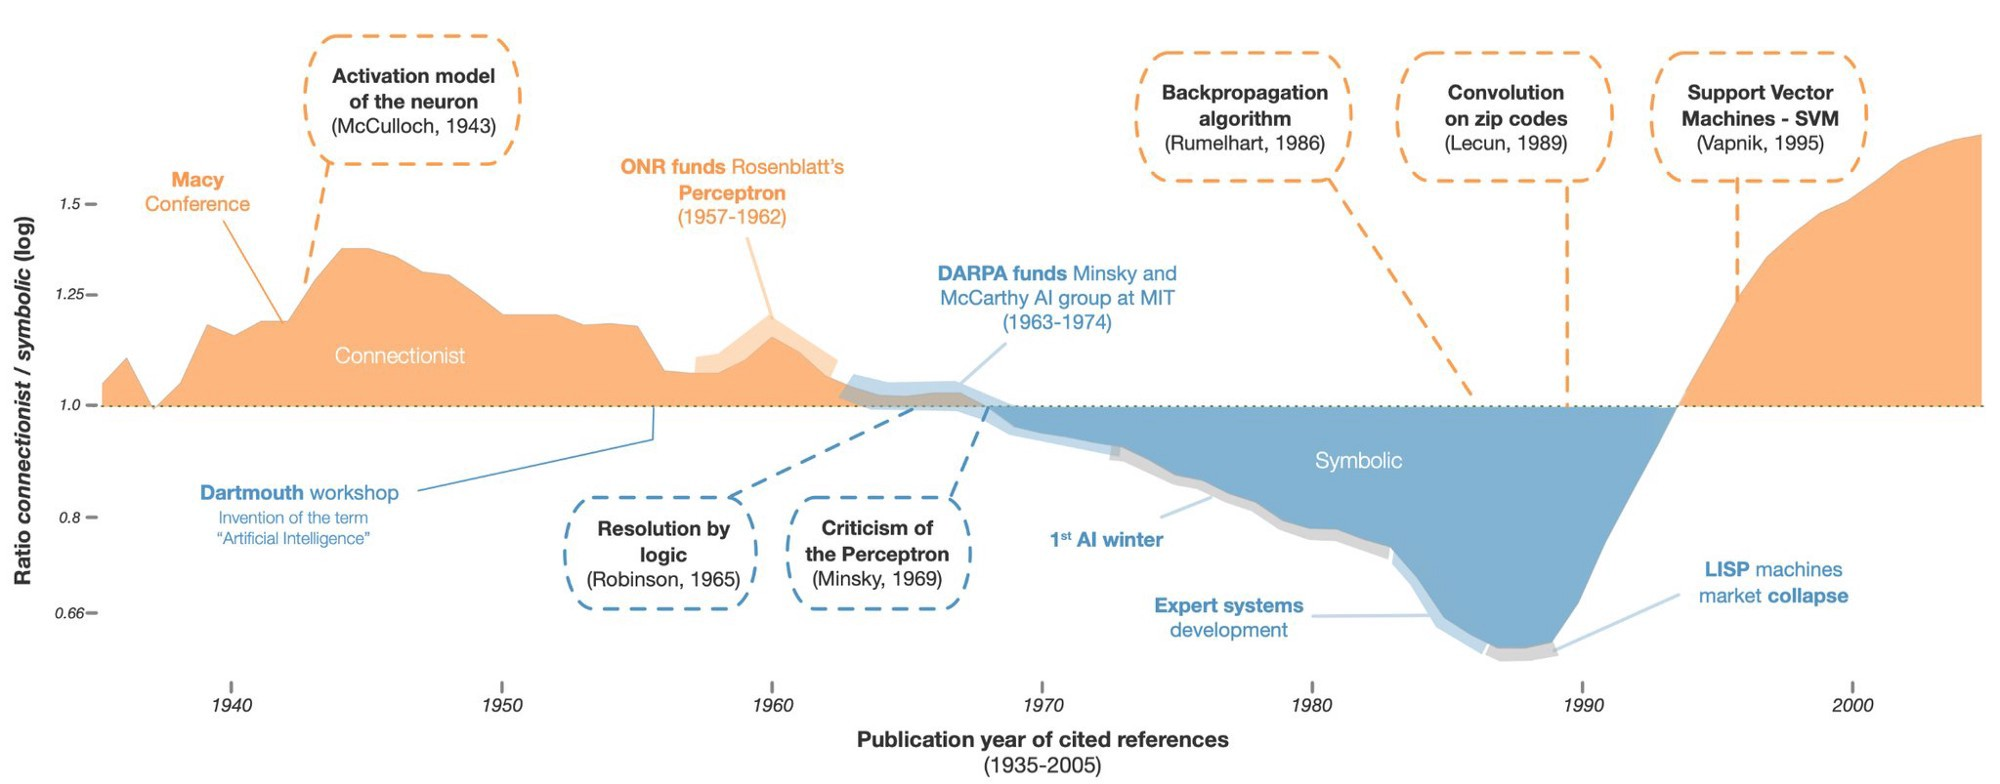 Figure 2: Symbolic vs Connectivist Research Publications over time [3]